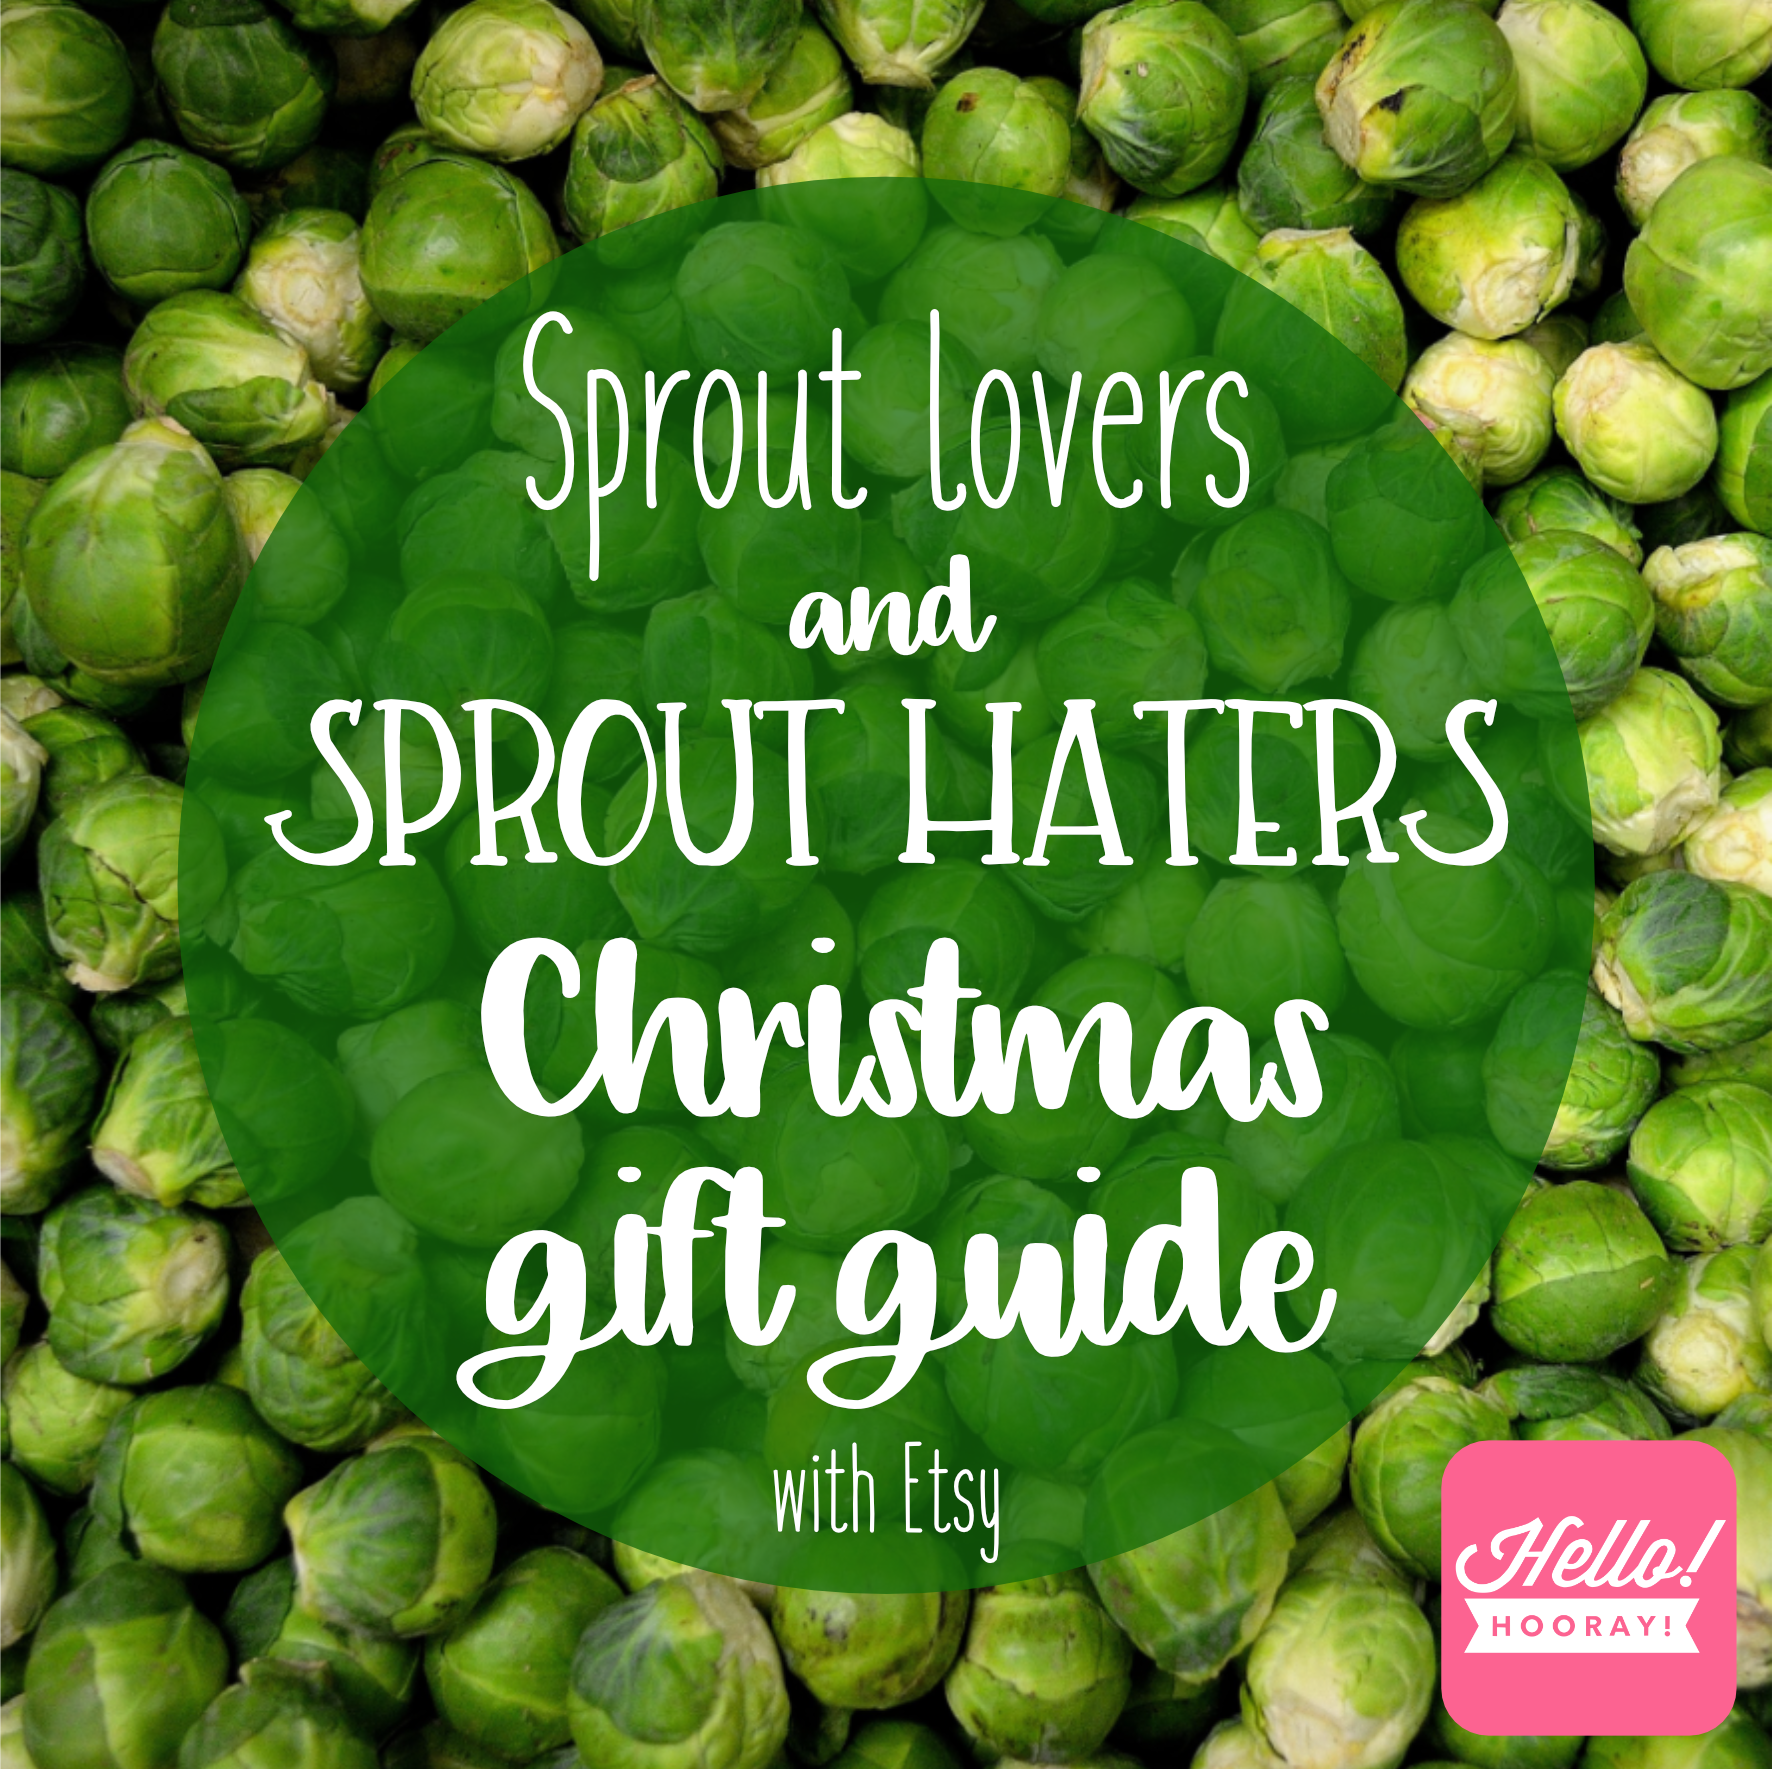 Sprout lovers and Sprout Haters gift guide with Etsy | Hello! Hooray!